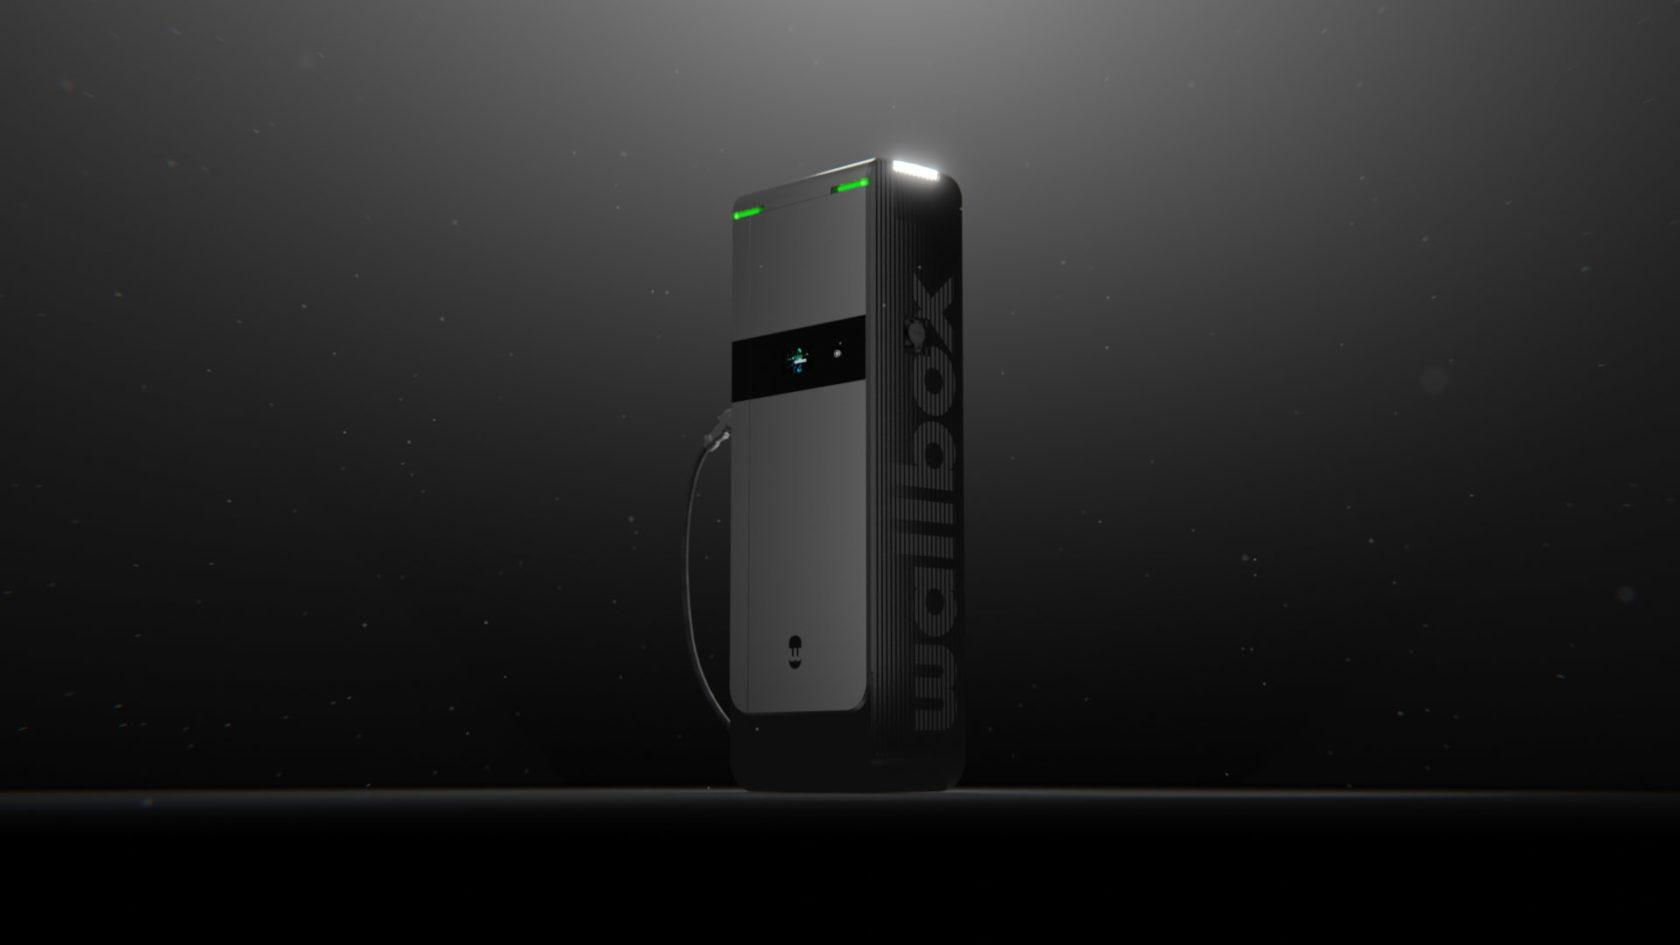 Wallbox announces Supernova, a next-generation fast public charger that offers greater efficiency and higher performance at half the cost